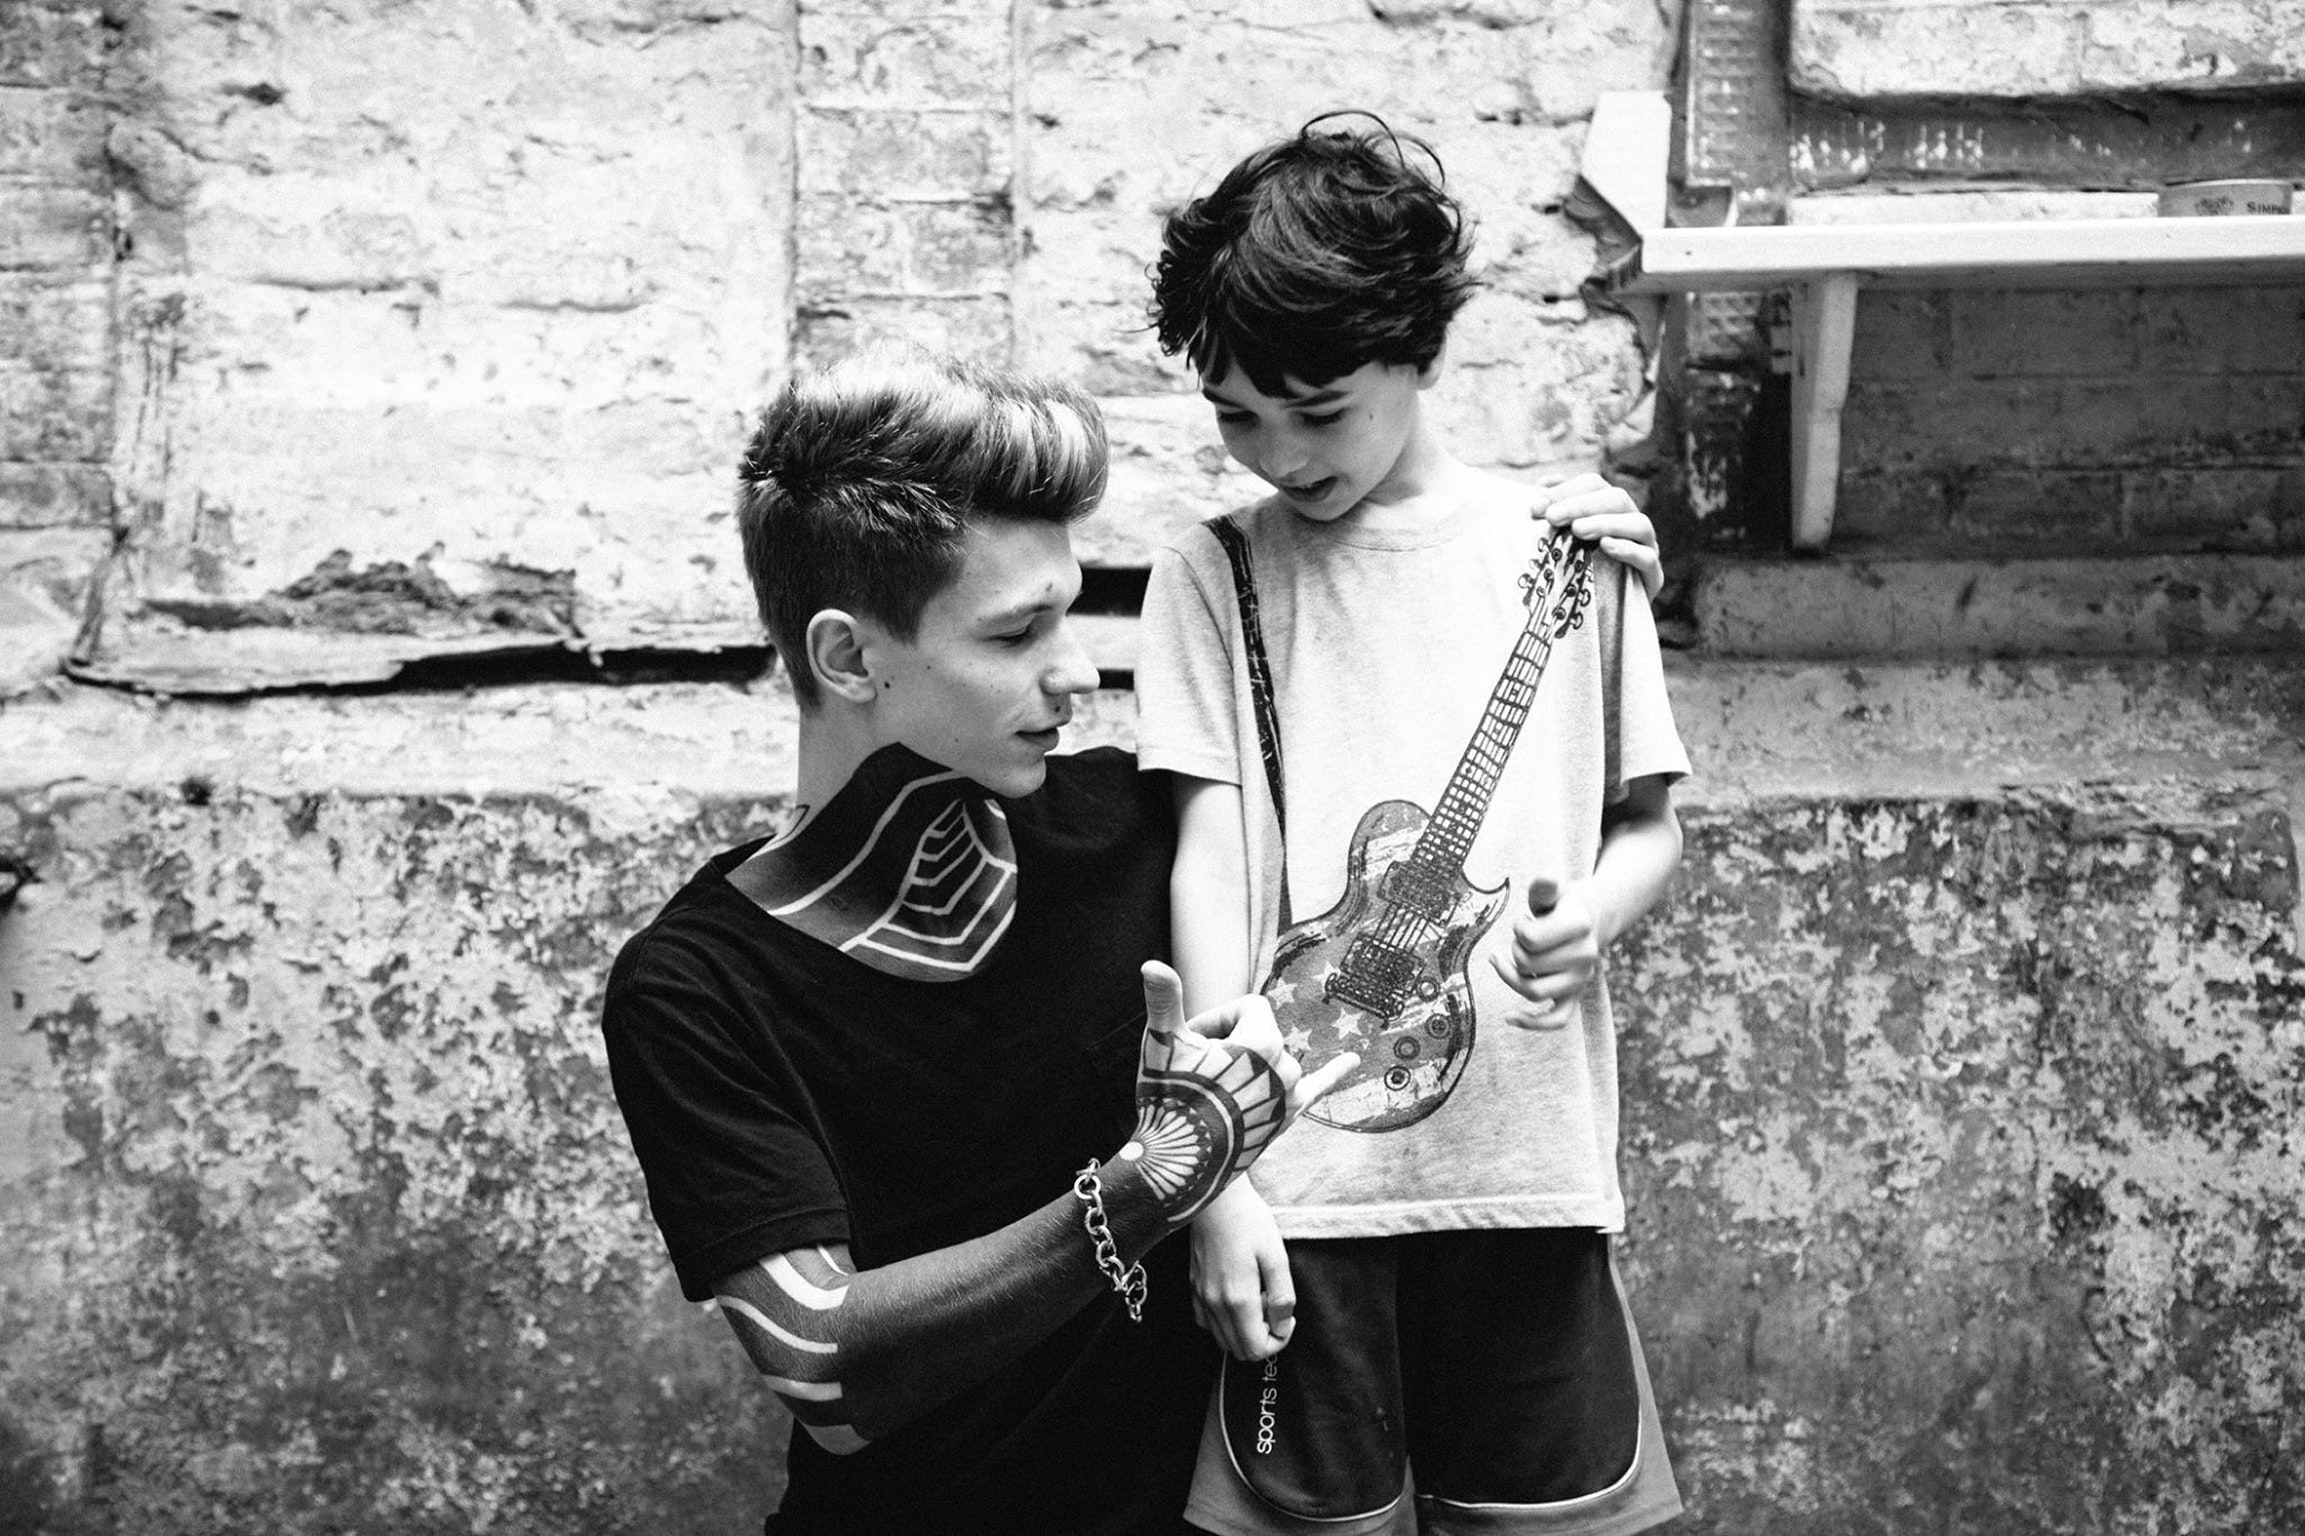 Man covered in tattoos hanging out with a young boy